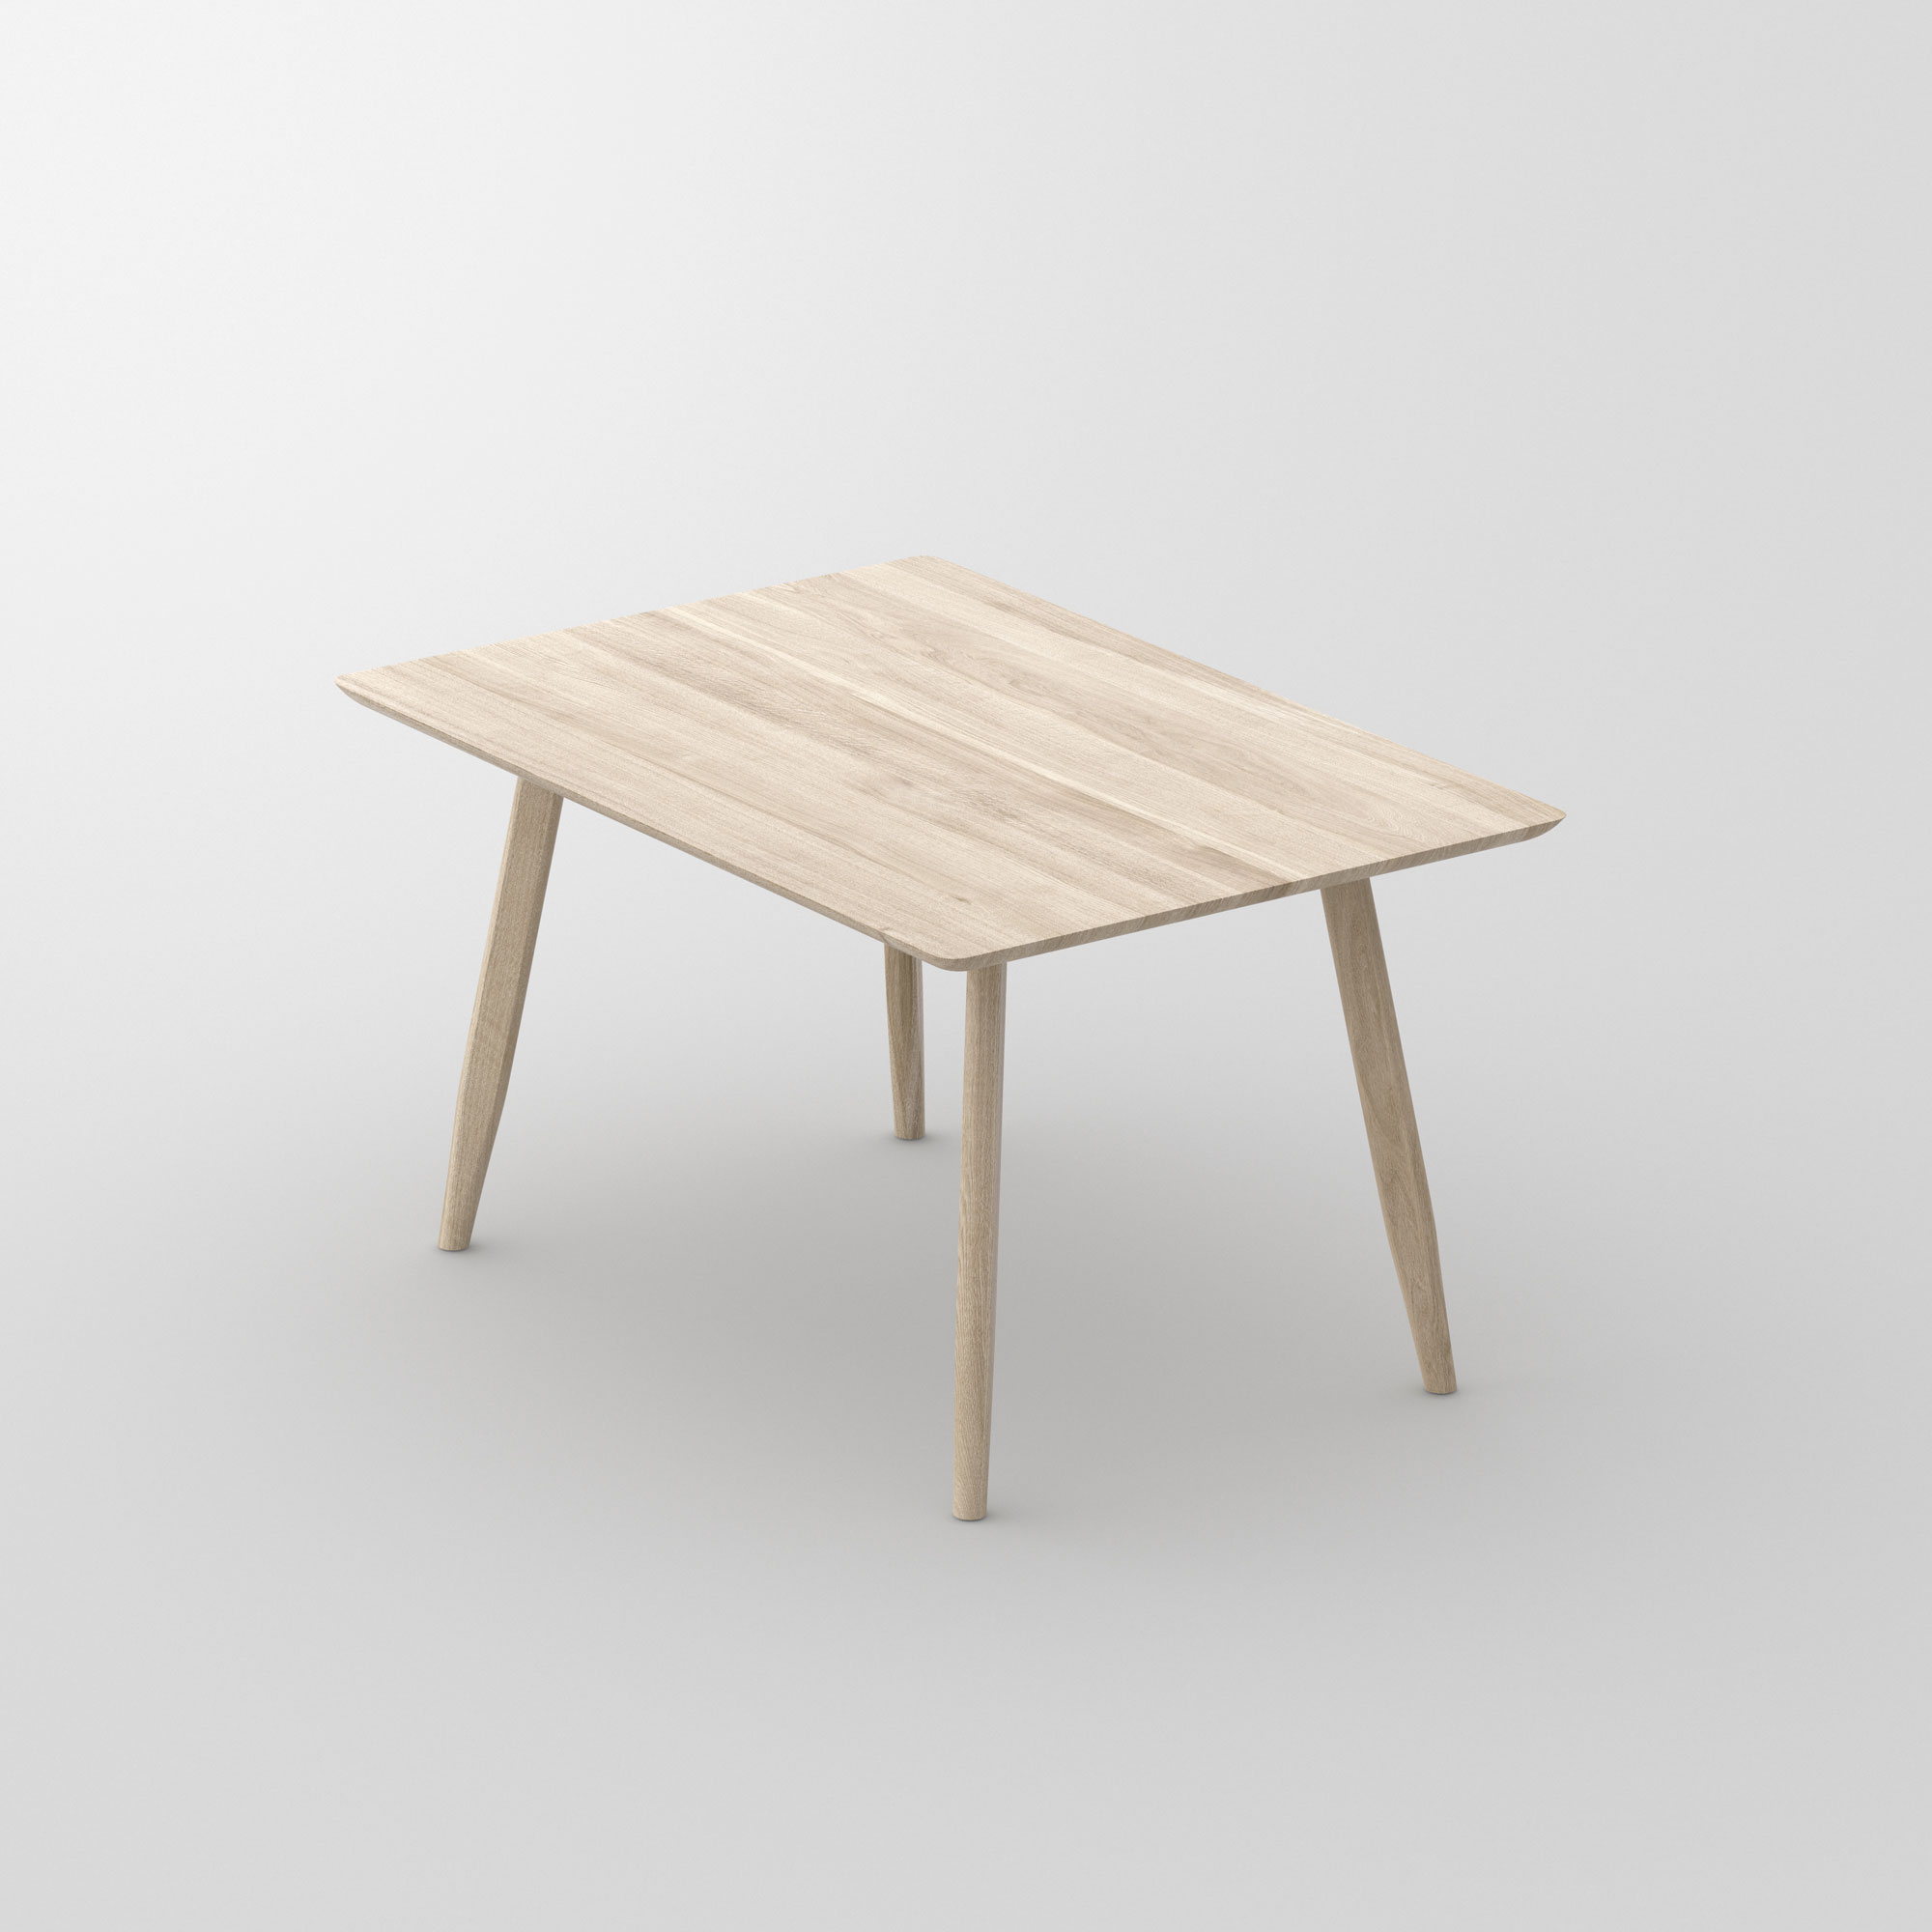 Designer Dining Table Wood AETAS BASIC 3 cam1 custom made in solid wood by vitamin design